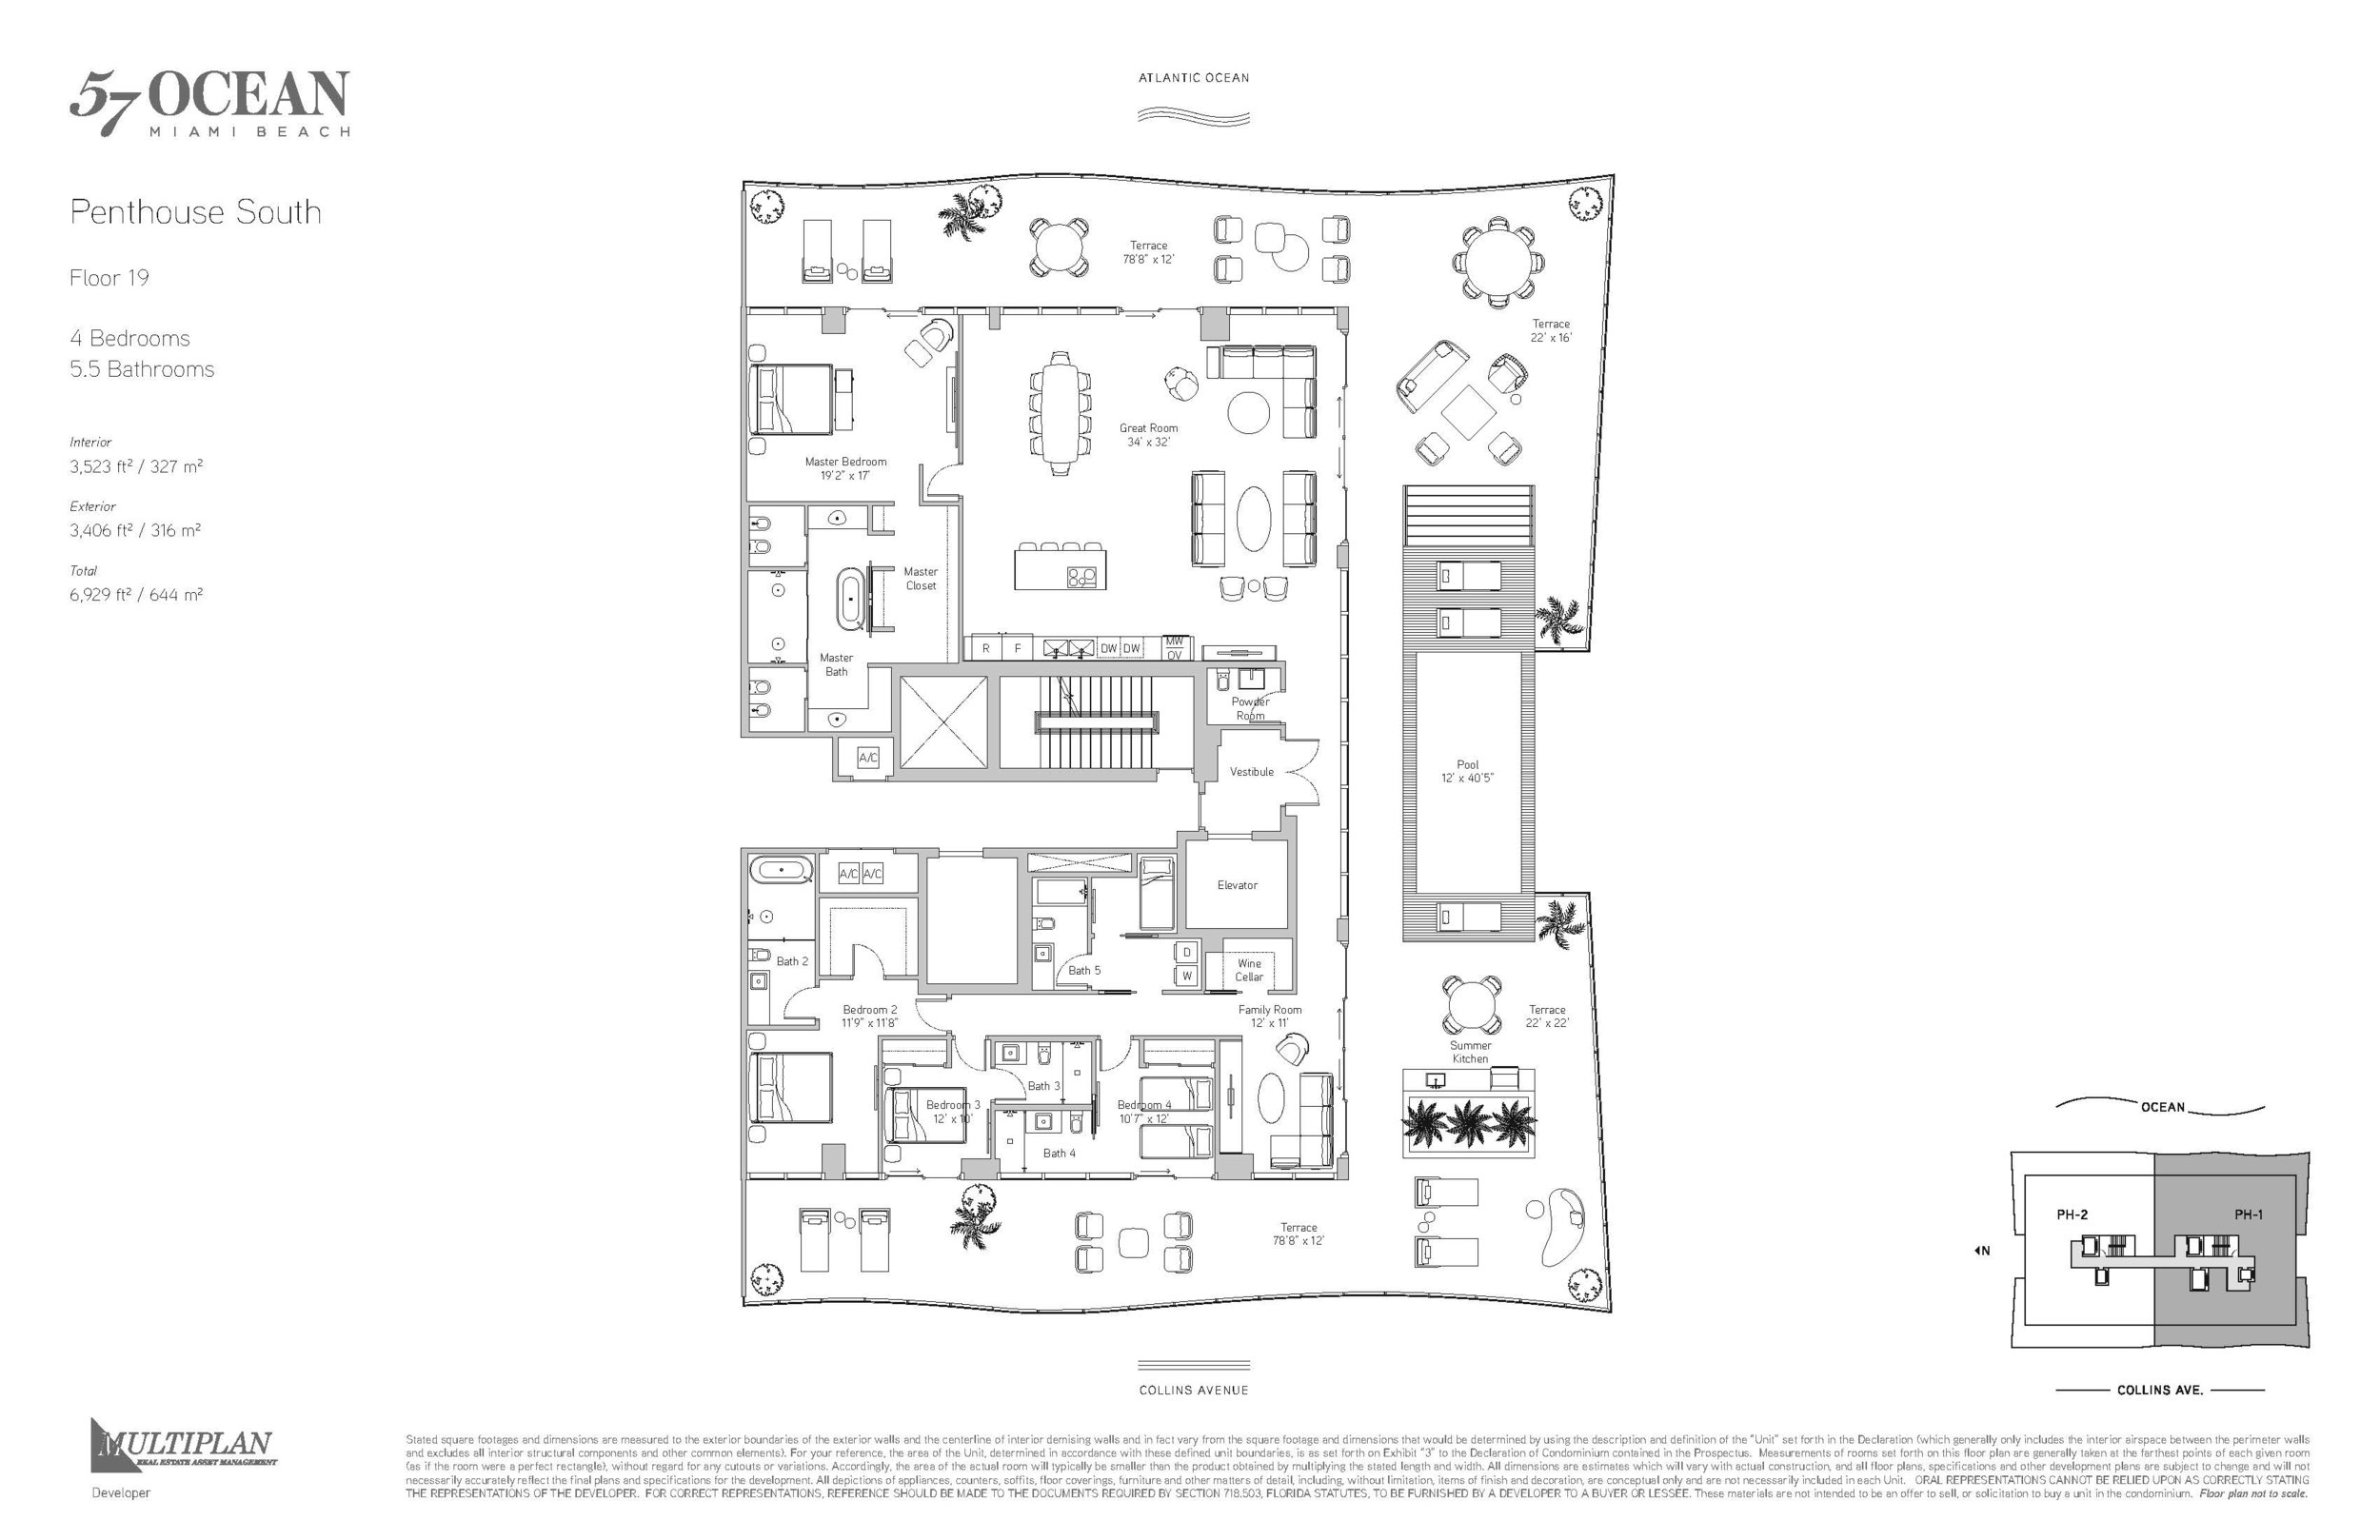 57 Ocean Floor Plans - 4 Bedroom Penthouse South